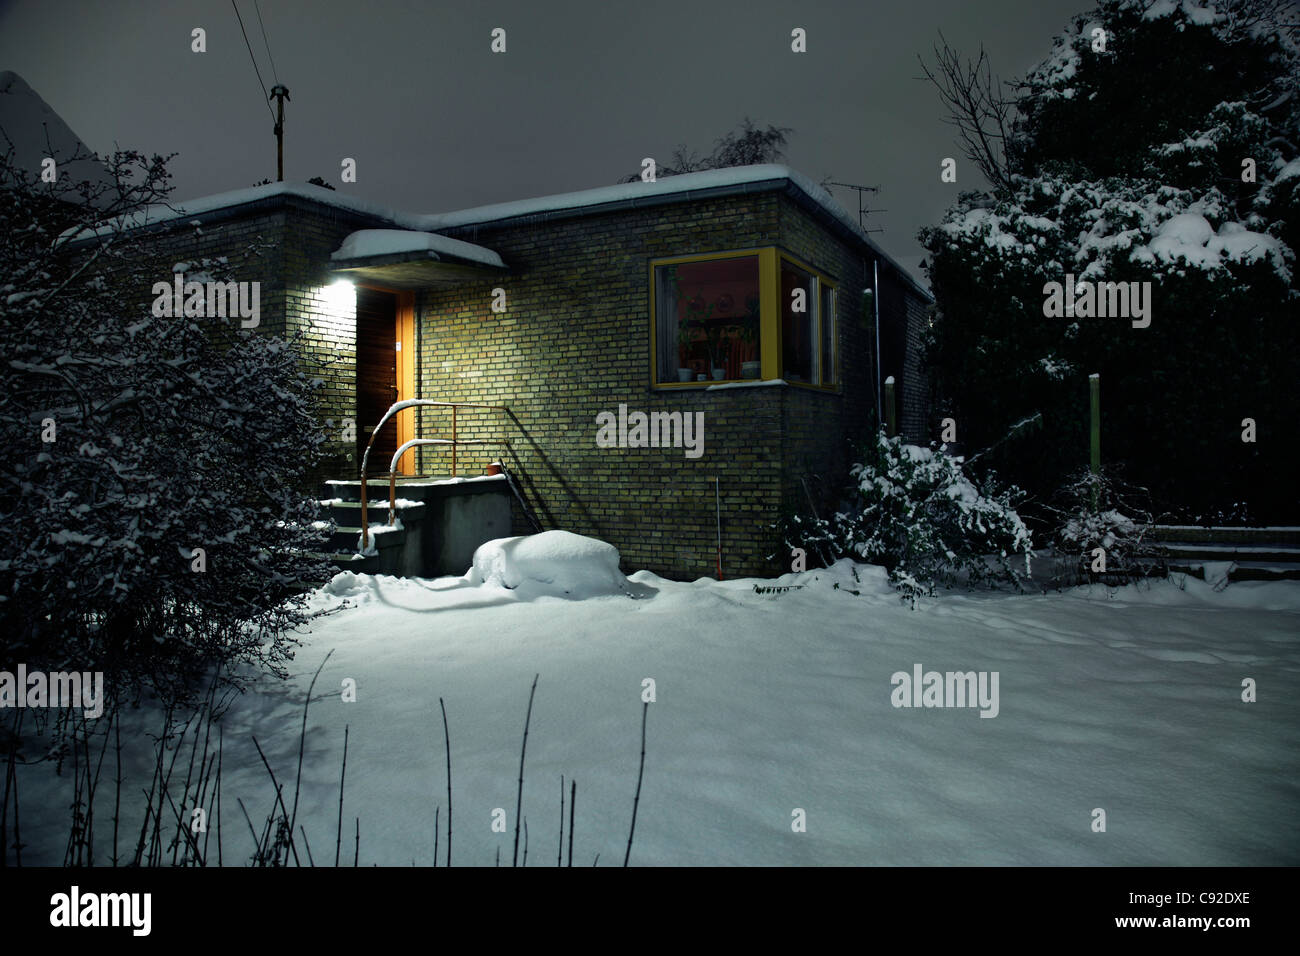 Snow covered house and front yard - Stock Image